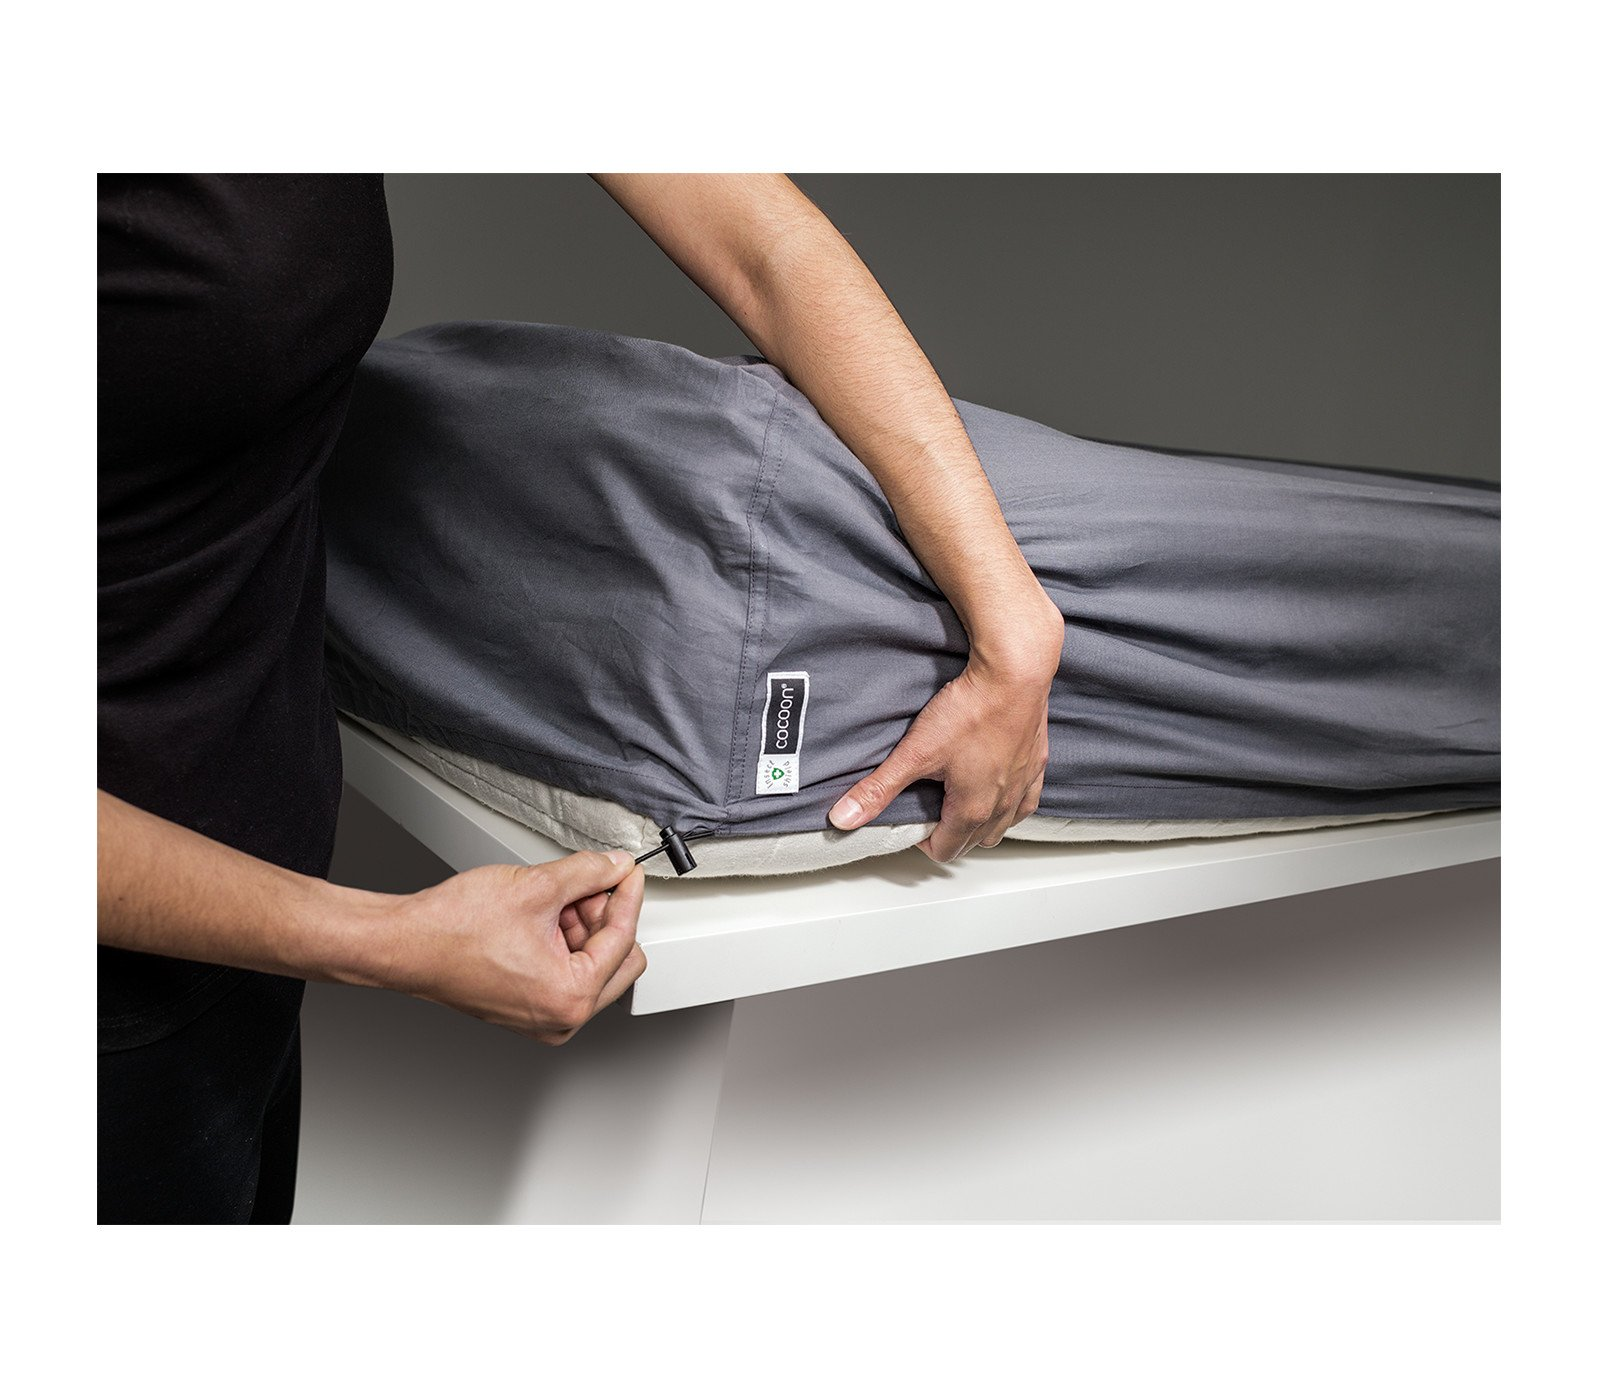 Insect protection sheet d (elephant grey)